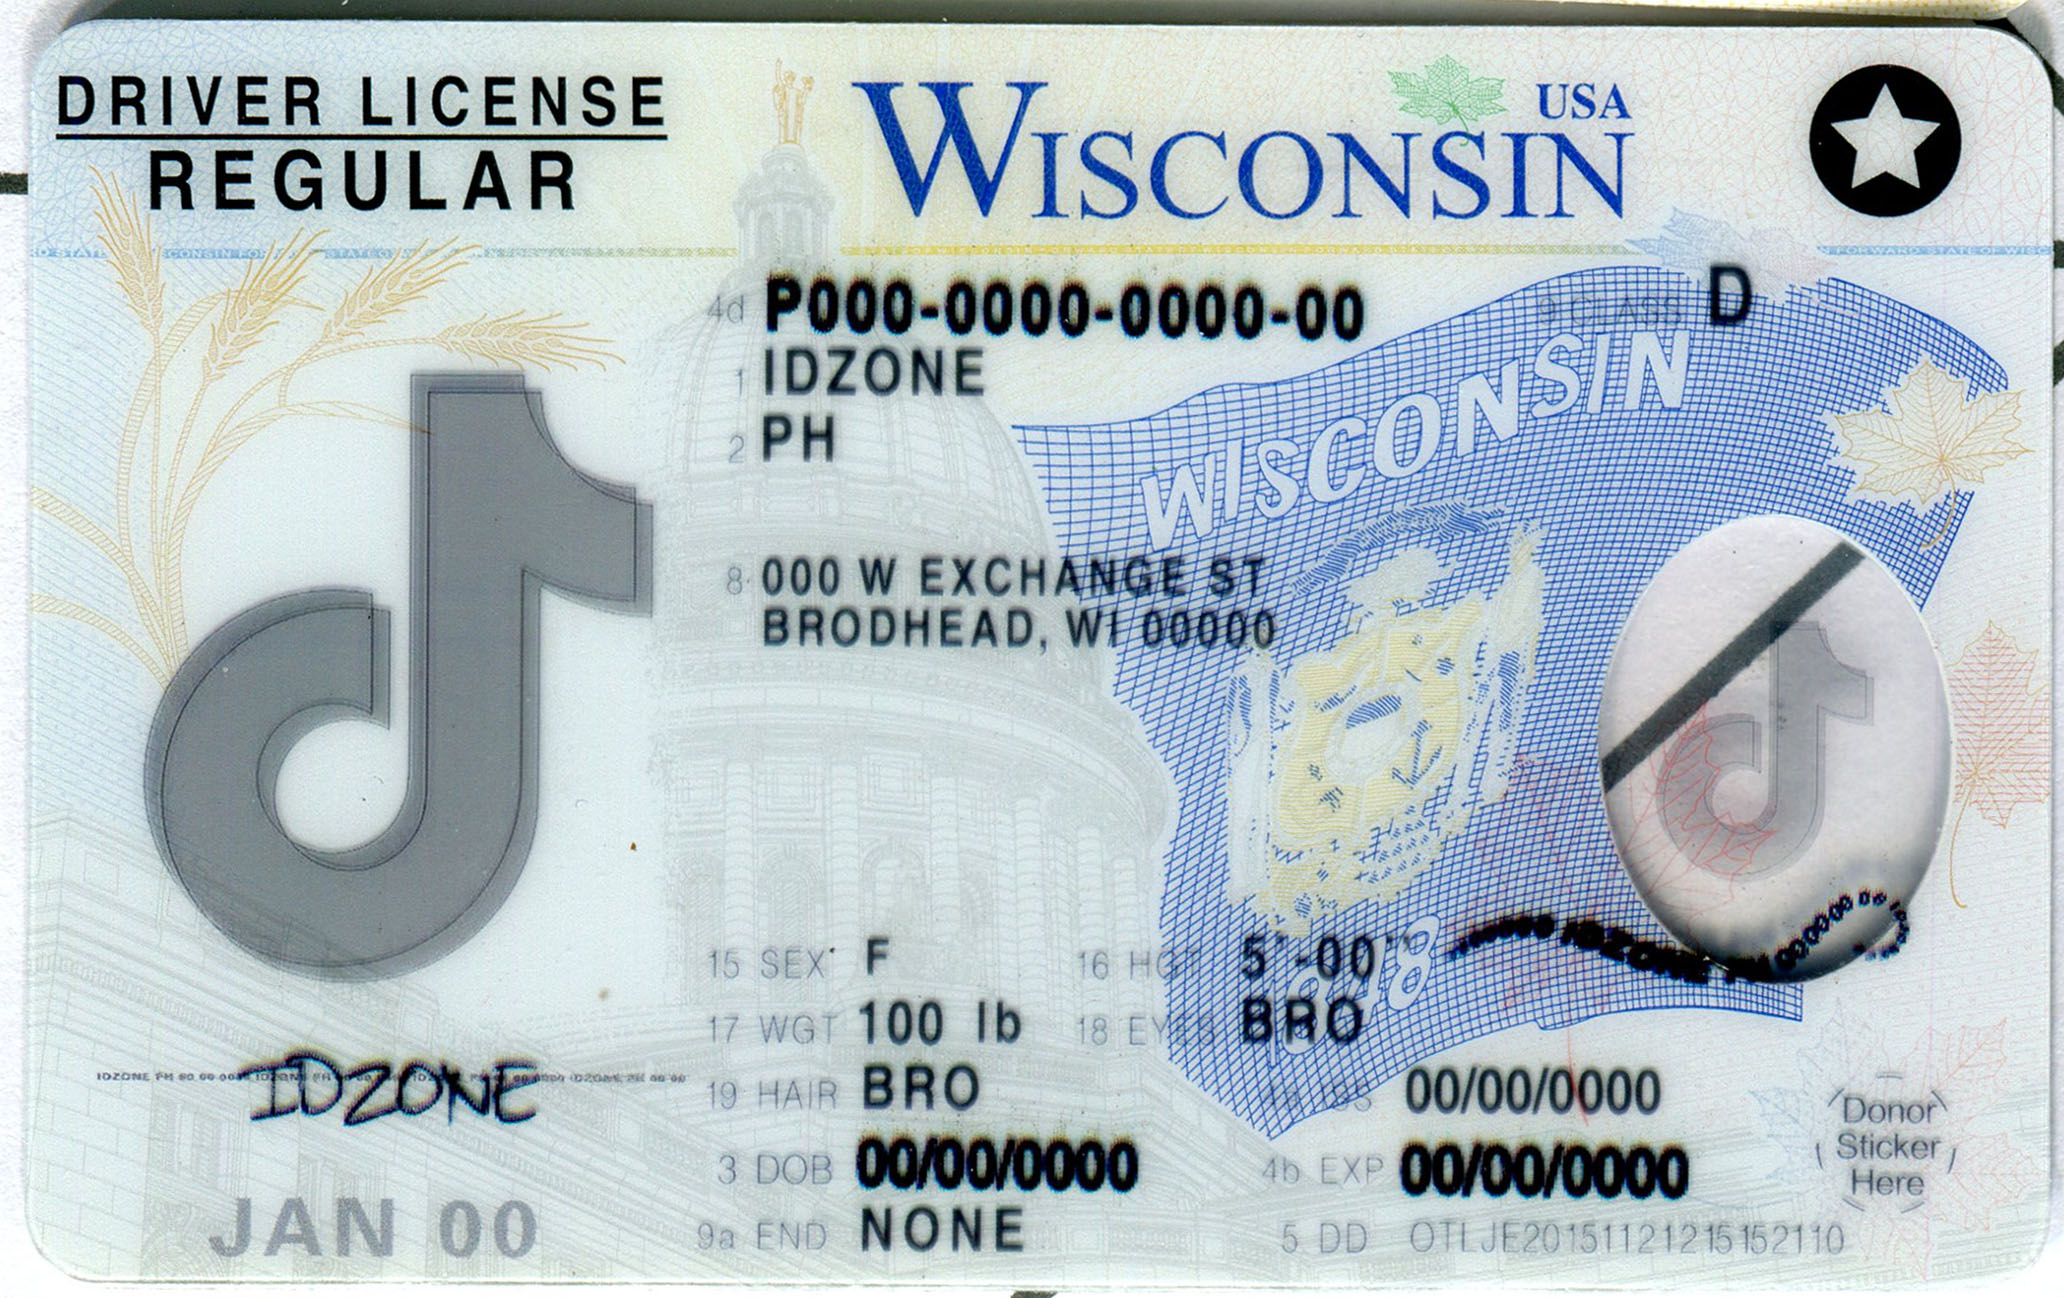 WISCONSIN-NEW fake id